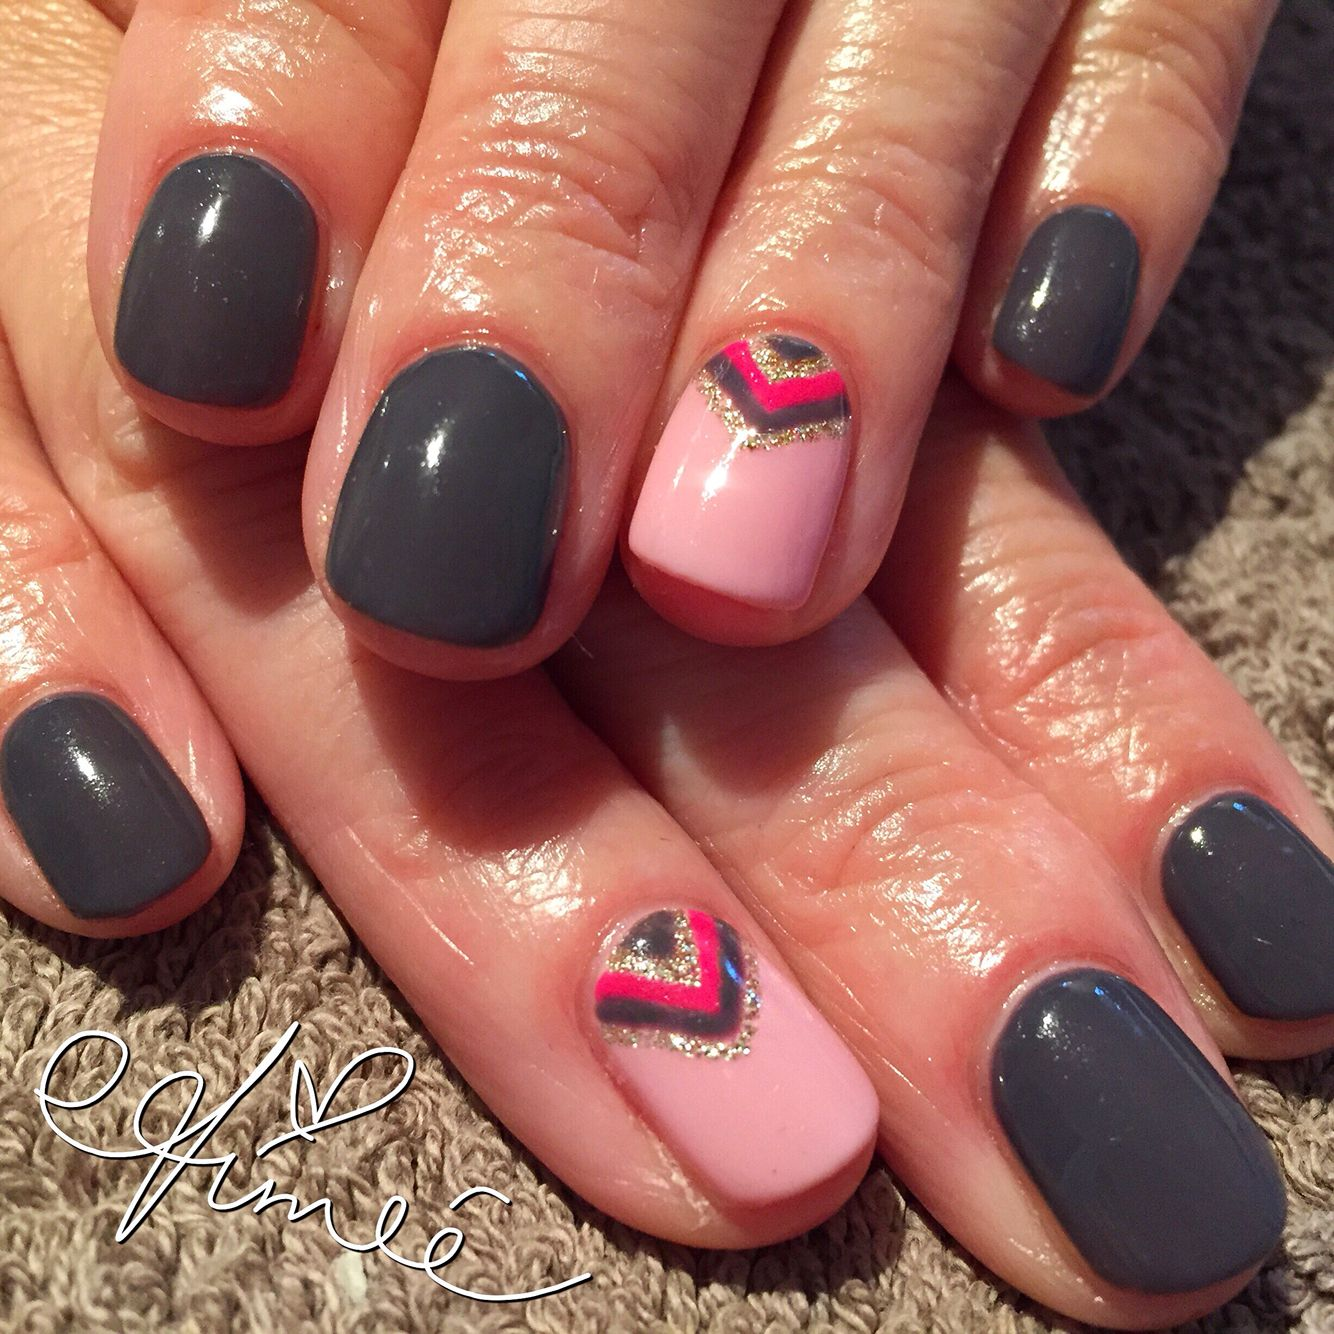 Gel Polish Designs: I Like The Grey Nails. Not So Keen On The Pink Nail